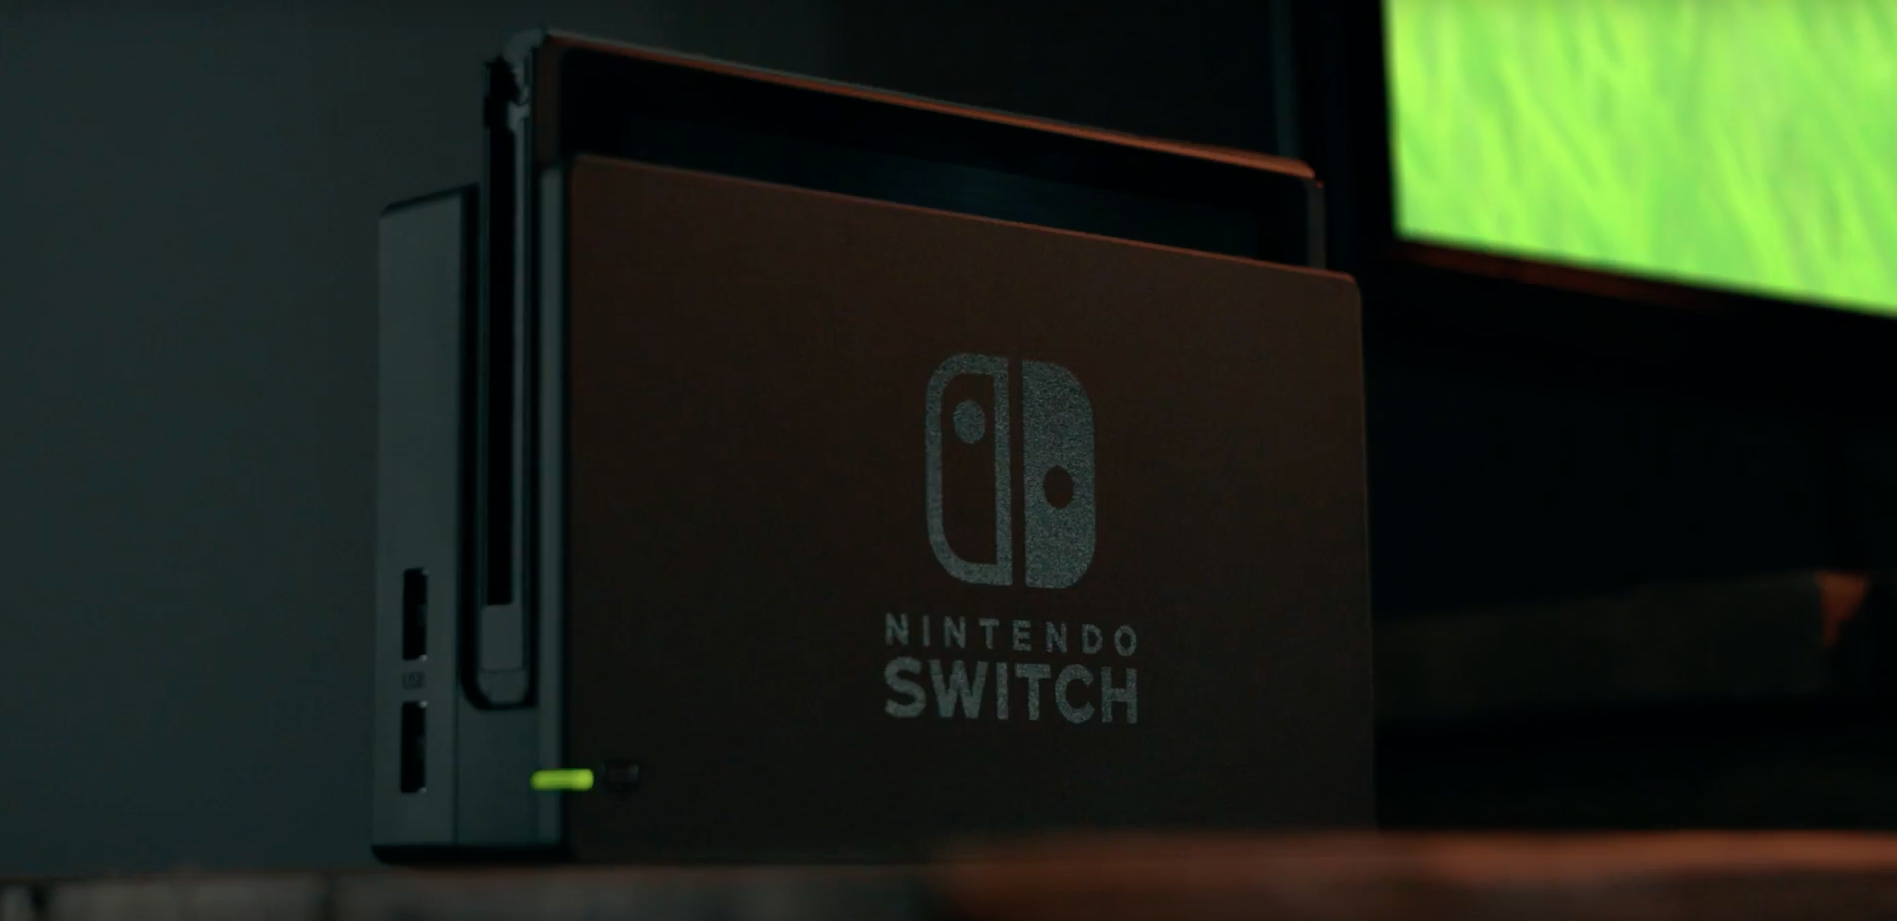 Powered by NVIDIA: Nintendo anuncia o Nintendo Switch